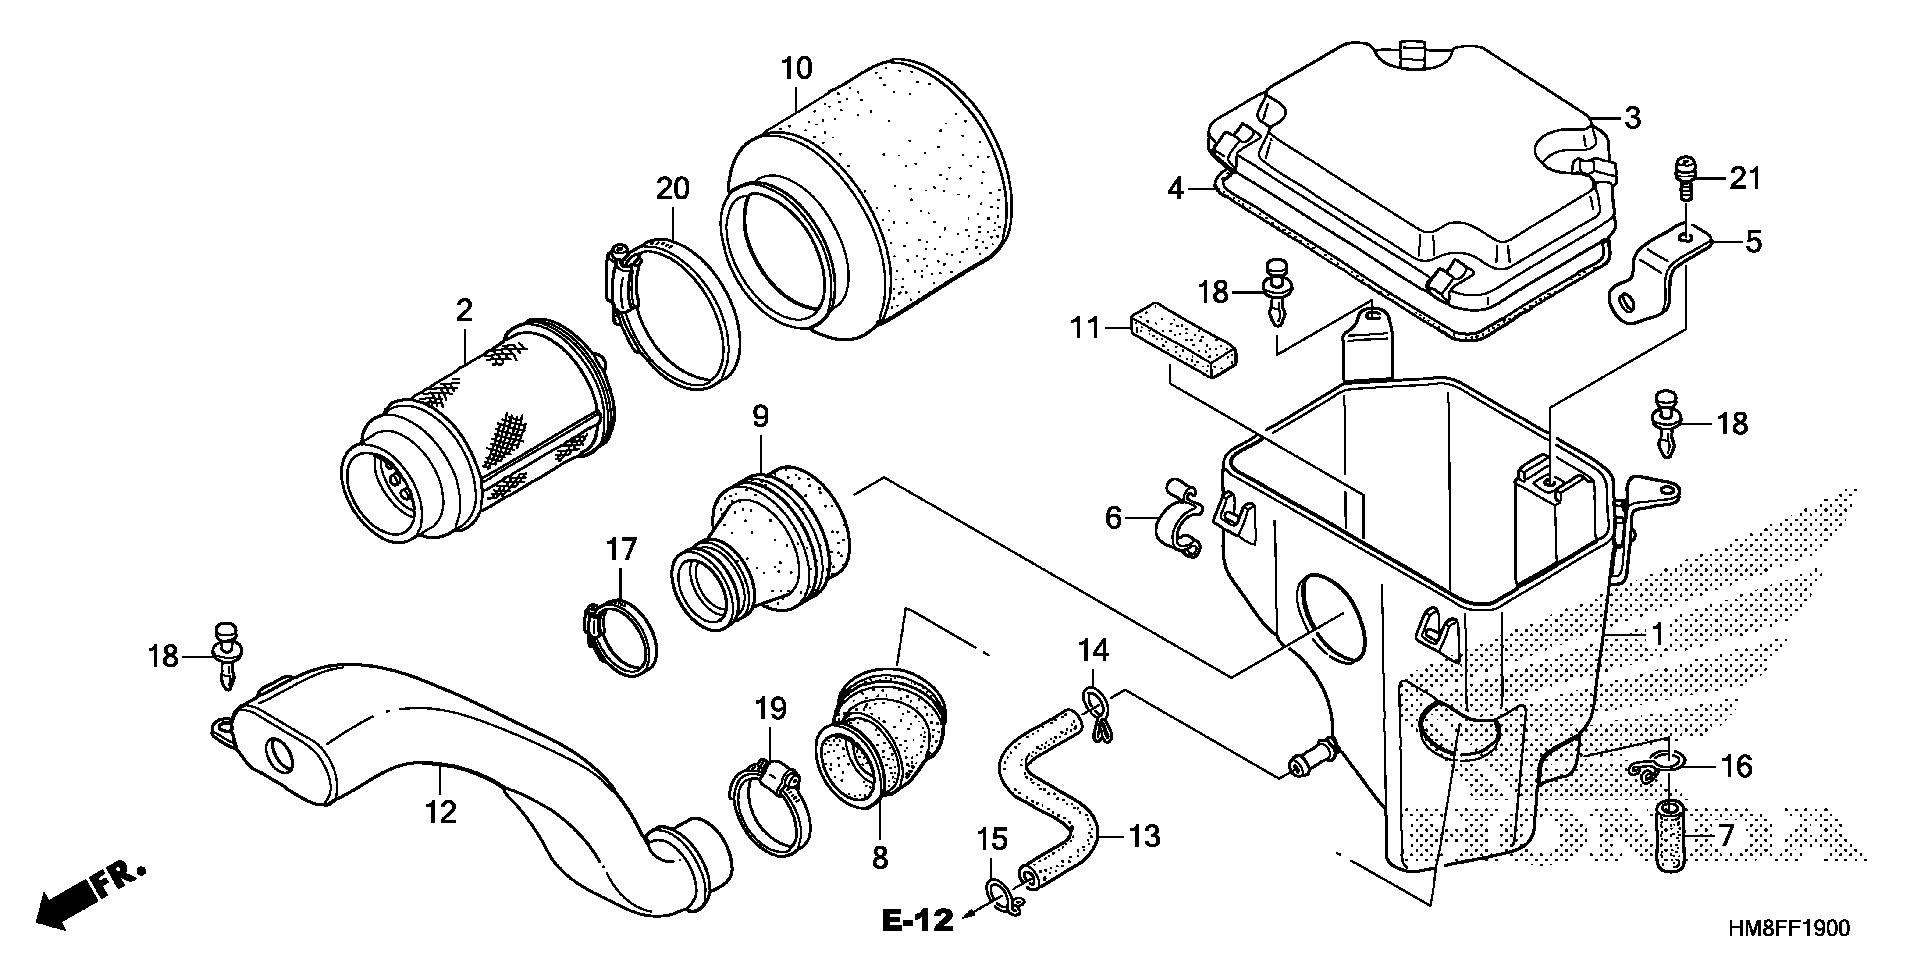 Do Diagram Of Honda Atv Parts Trx250tm A